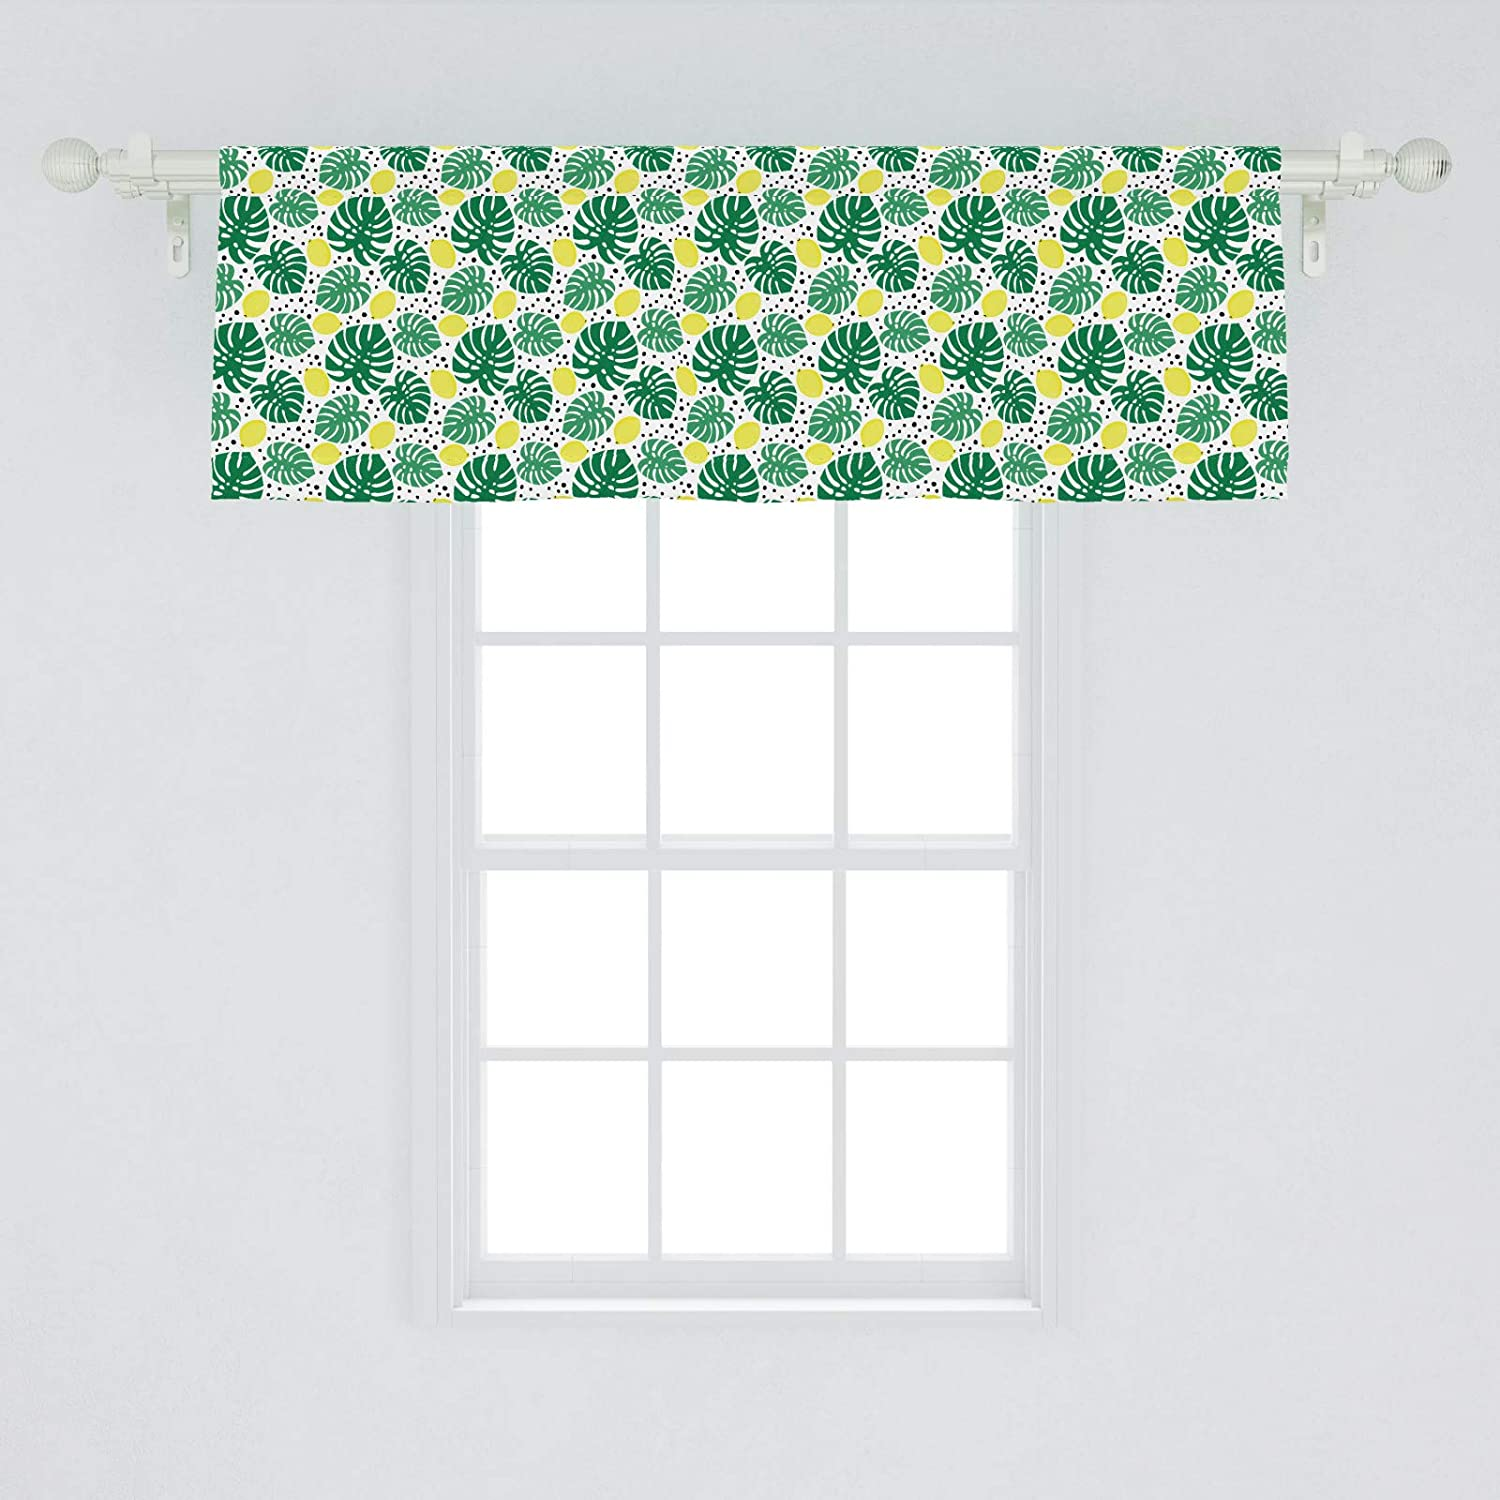 Lunarable Tropical Window Valance, Tropical Monstera Leaves Pattern with Juicy Fresh Lemons and Dots, Curtain Valance for Kitchen Bedroom Decor with Rod Pocket, 54